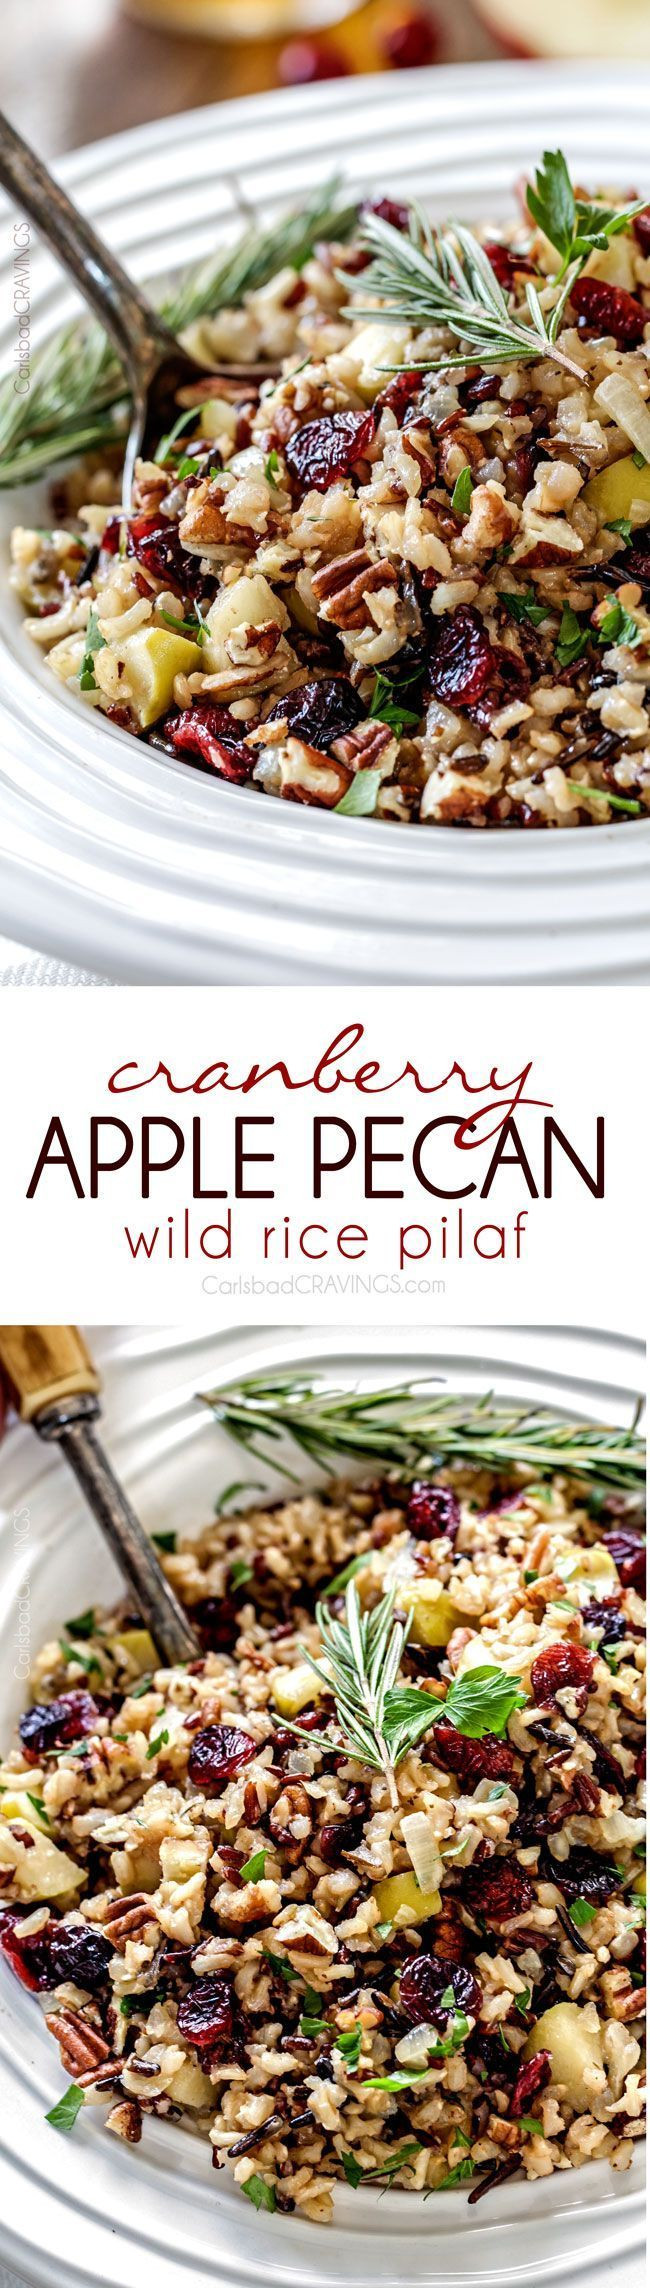 Healthy Rice Side Dishes For Chicken  Best 25 Wild rice salad ideas on Pinterest